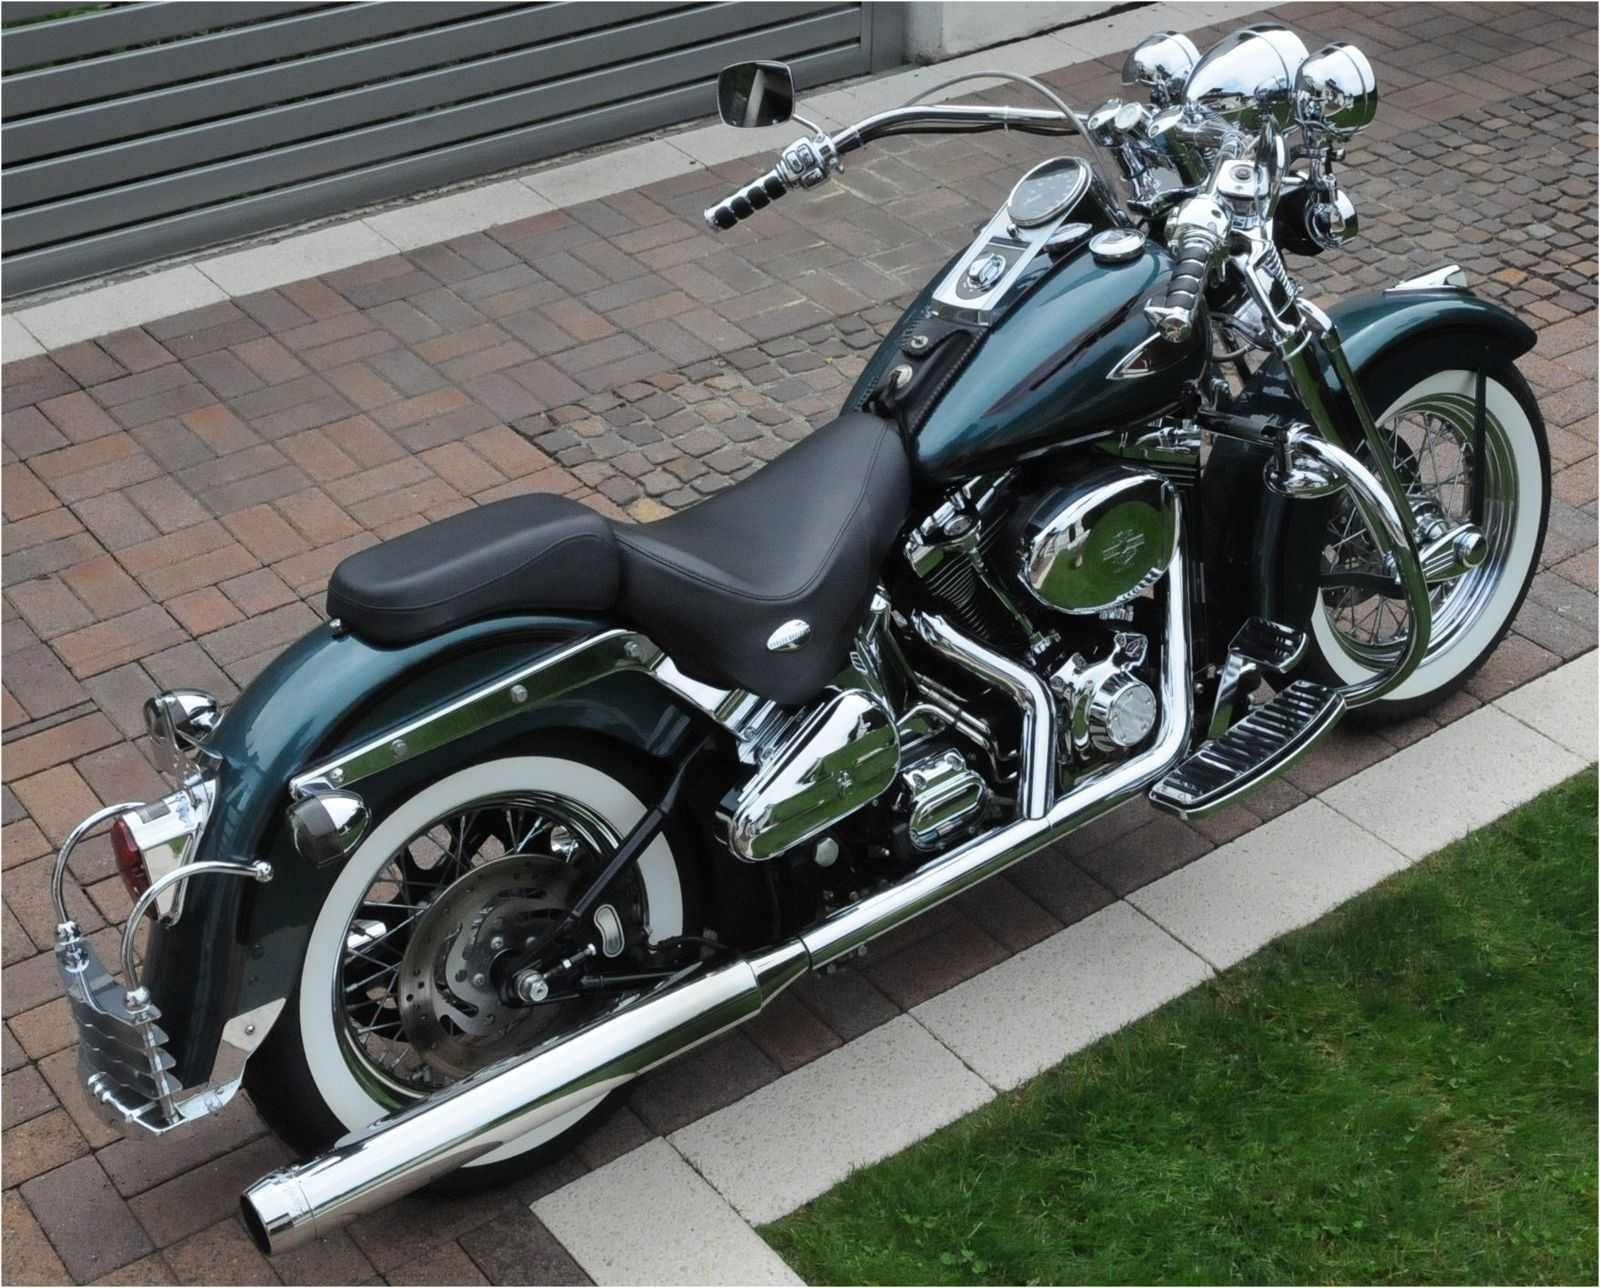 Heritage Softail Softail Deluxe Two Harleys One Painter Softail Deluxe Harley Davidson Softail